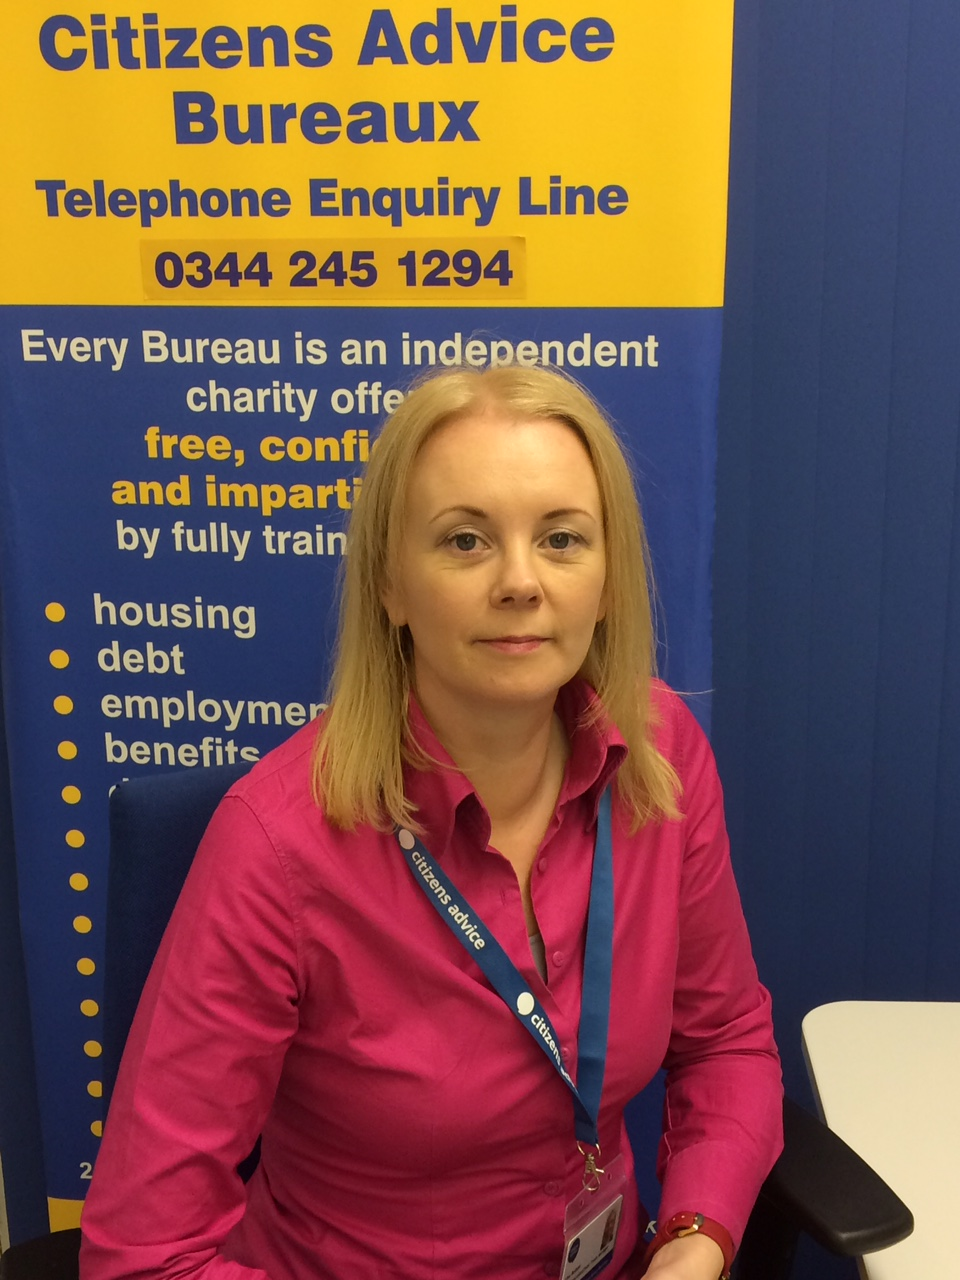 , Citizens Advice geared up for New-Year debt worries, Skem News - The Top Source for Skelmersdale News